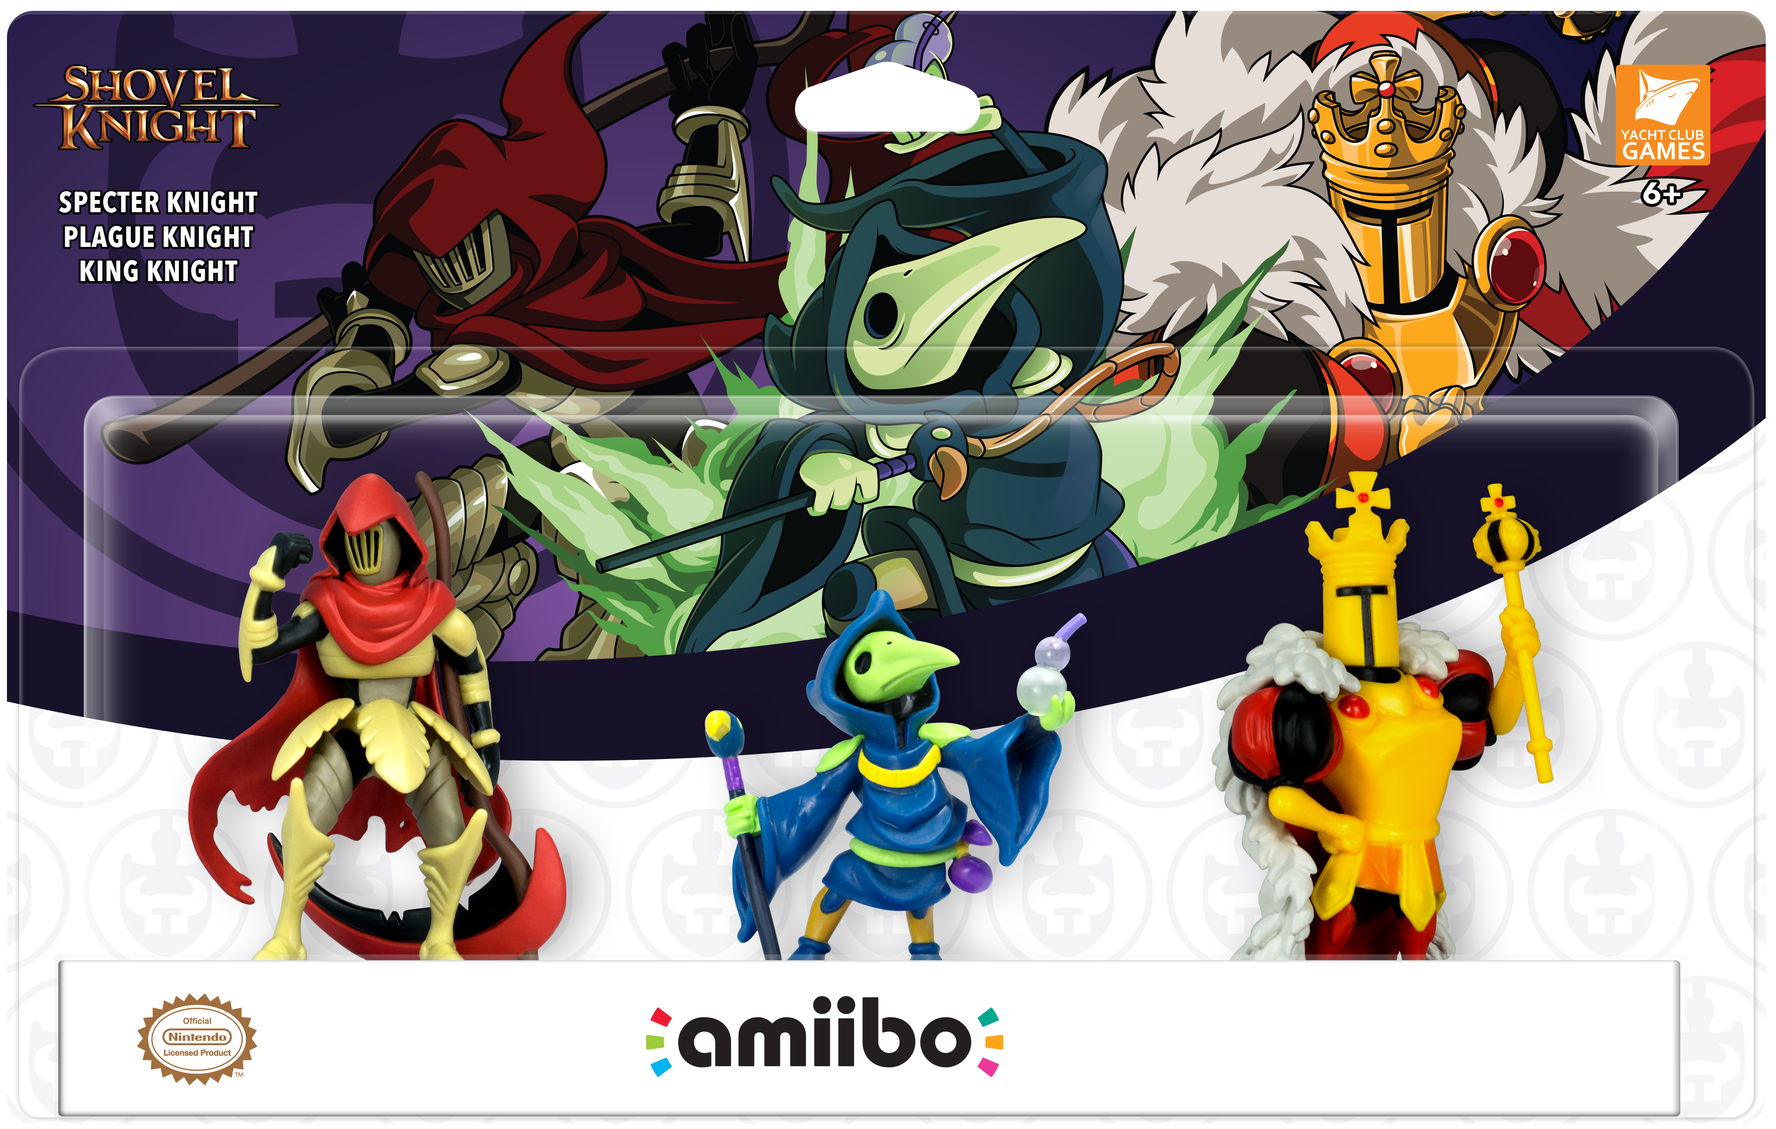 PAX 2017: New Shovel Knight Amiibo Announced